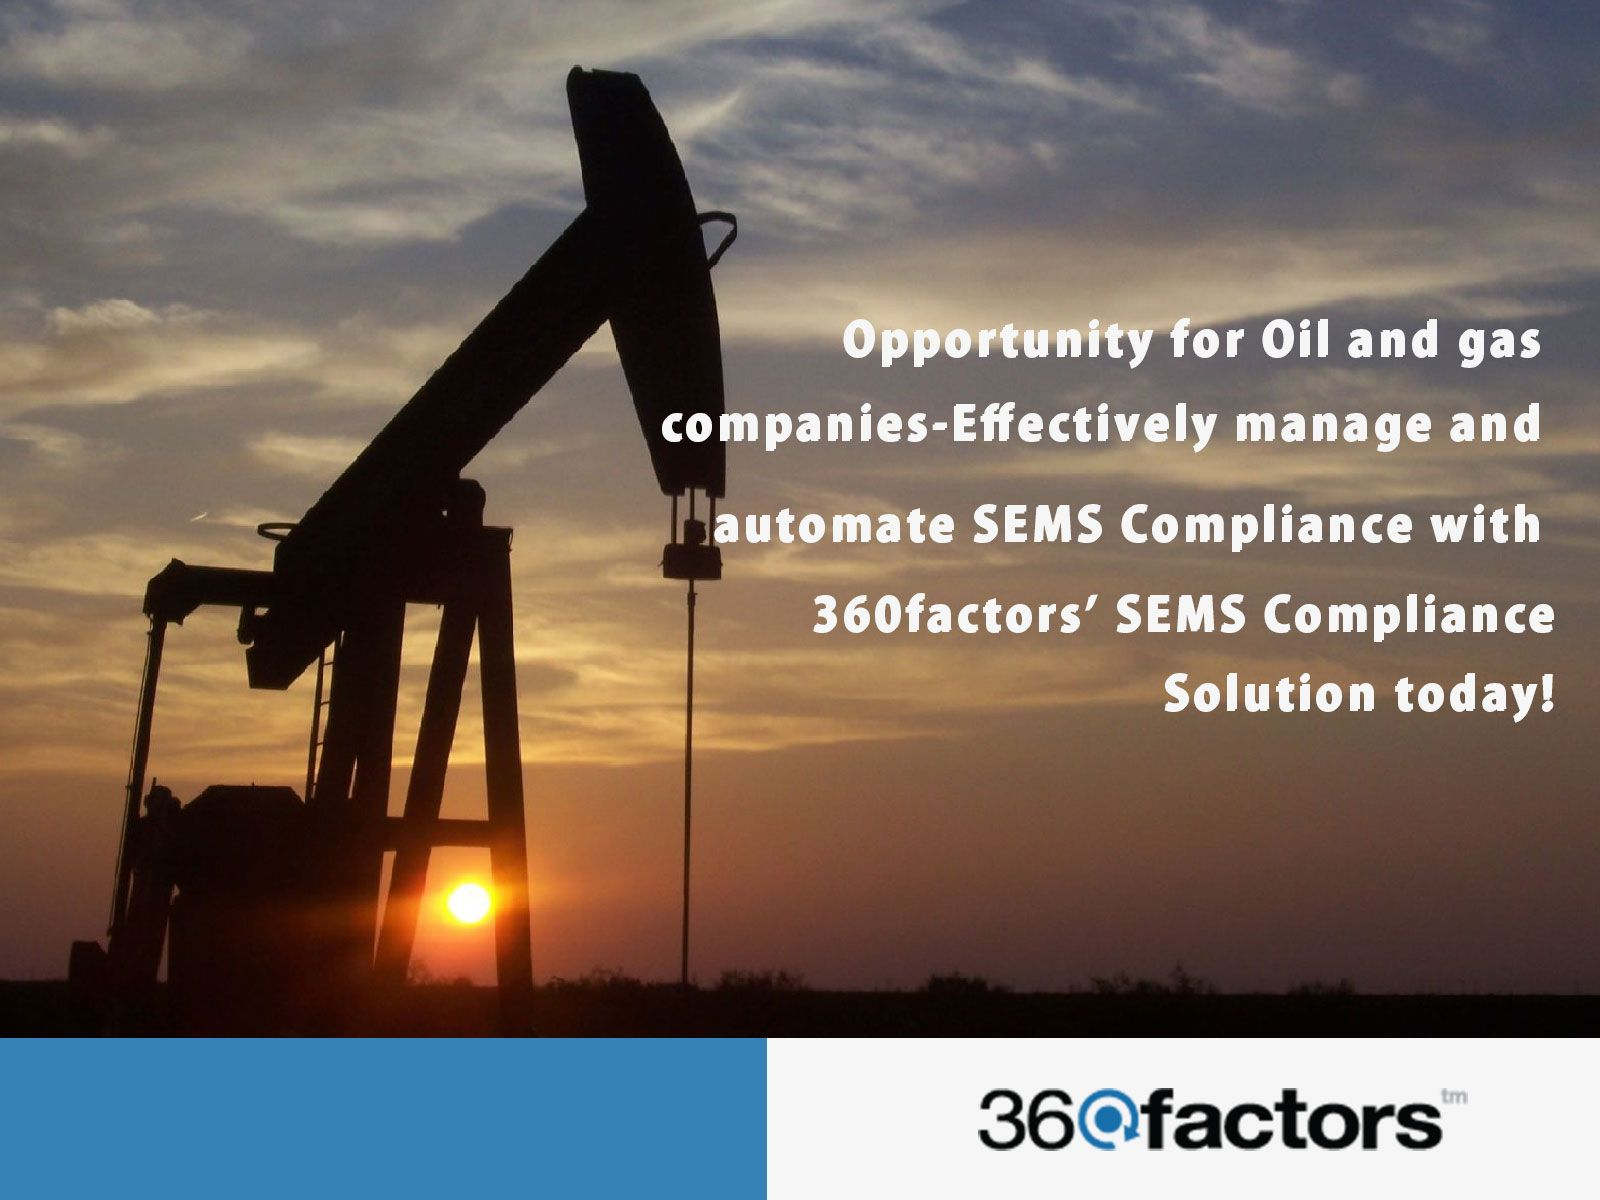 Opportunity for Oilandgas companies Effectively manage